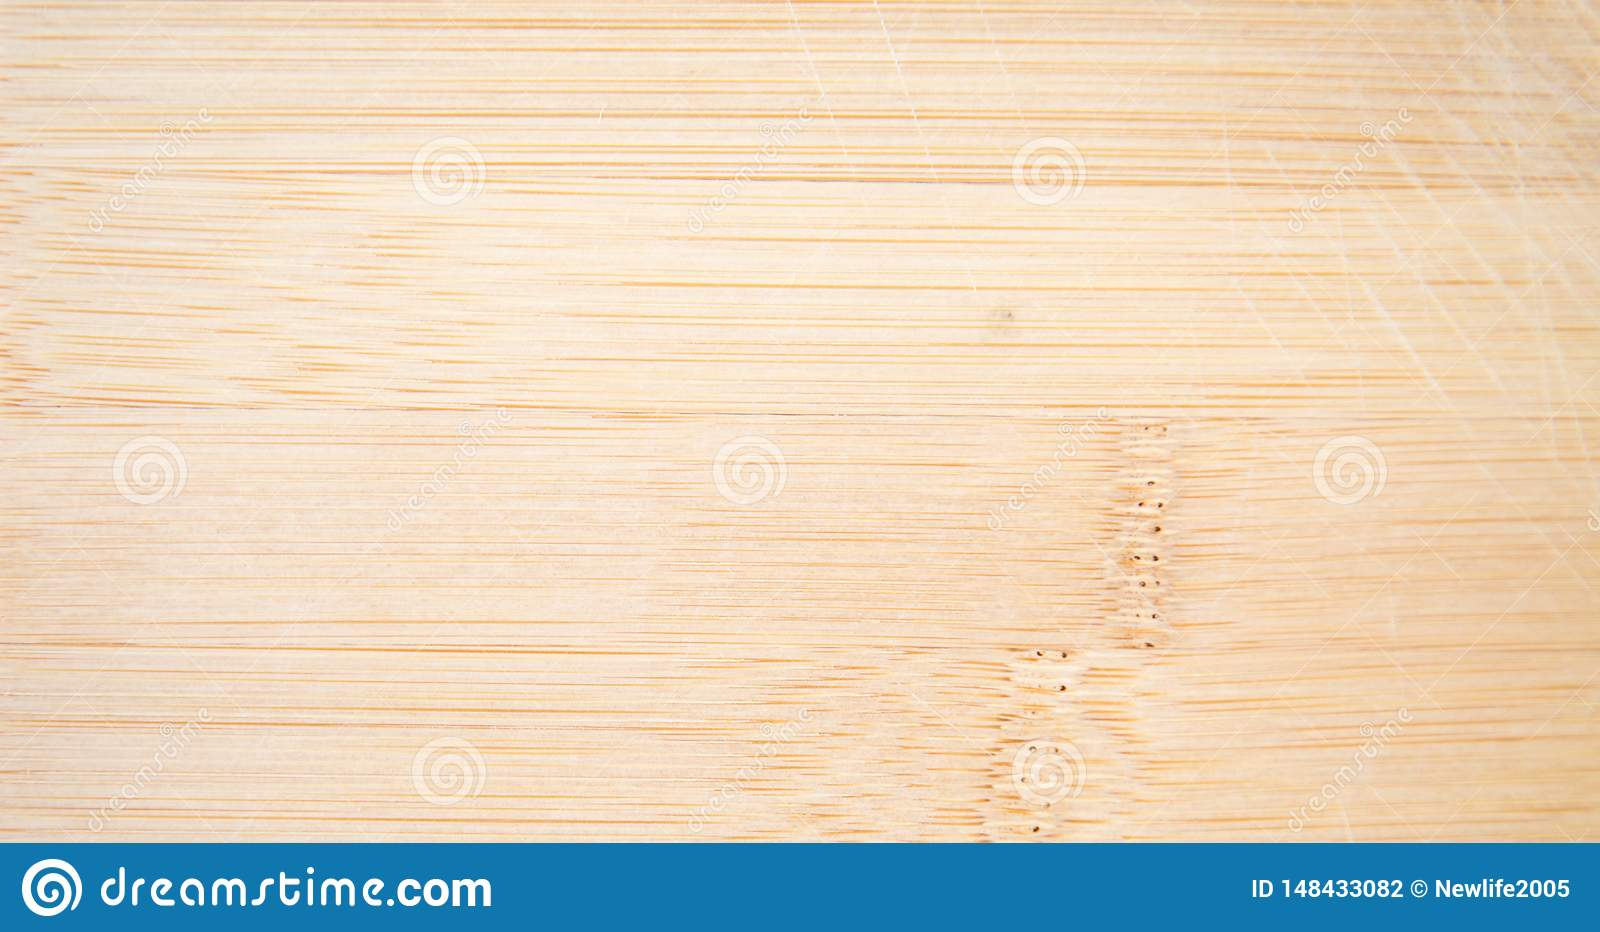 Bamboo wood background. Texture backgrounds for Wallpaper graphics design